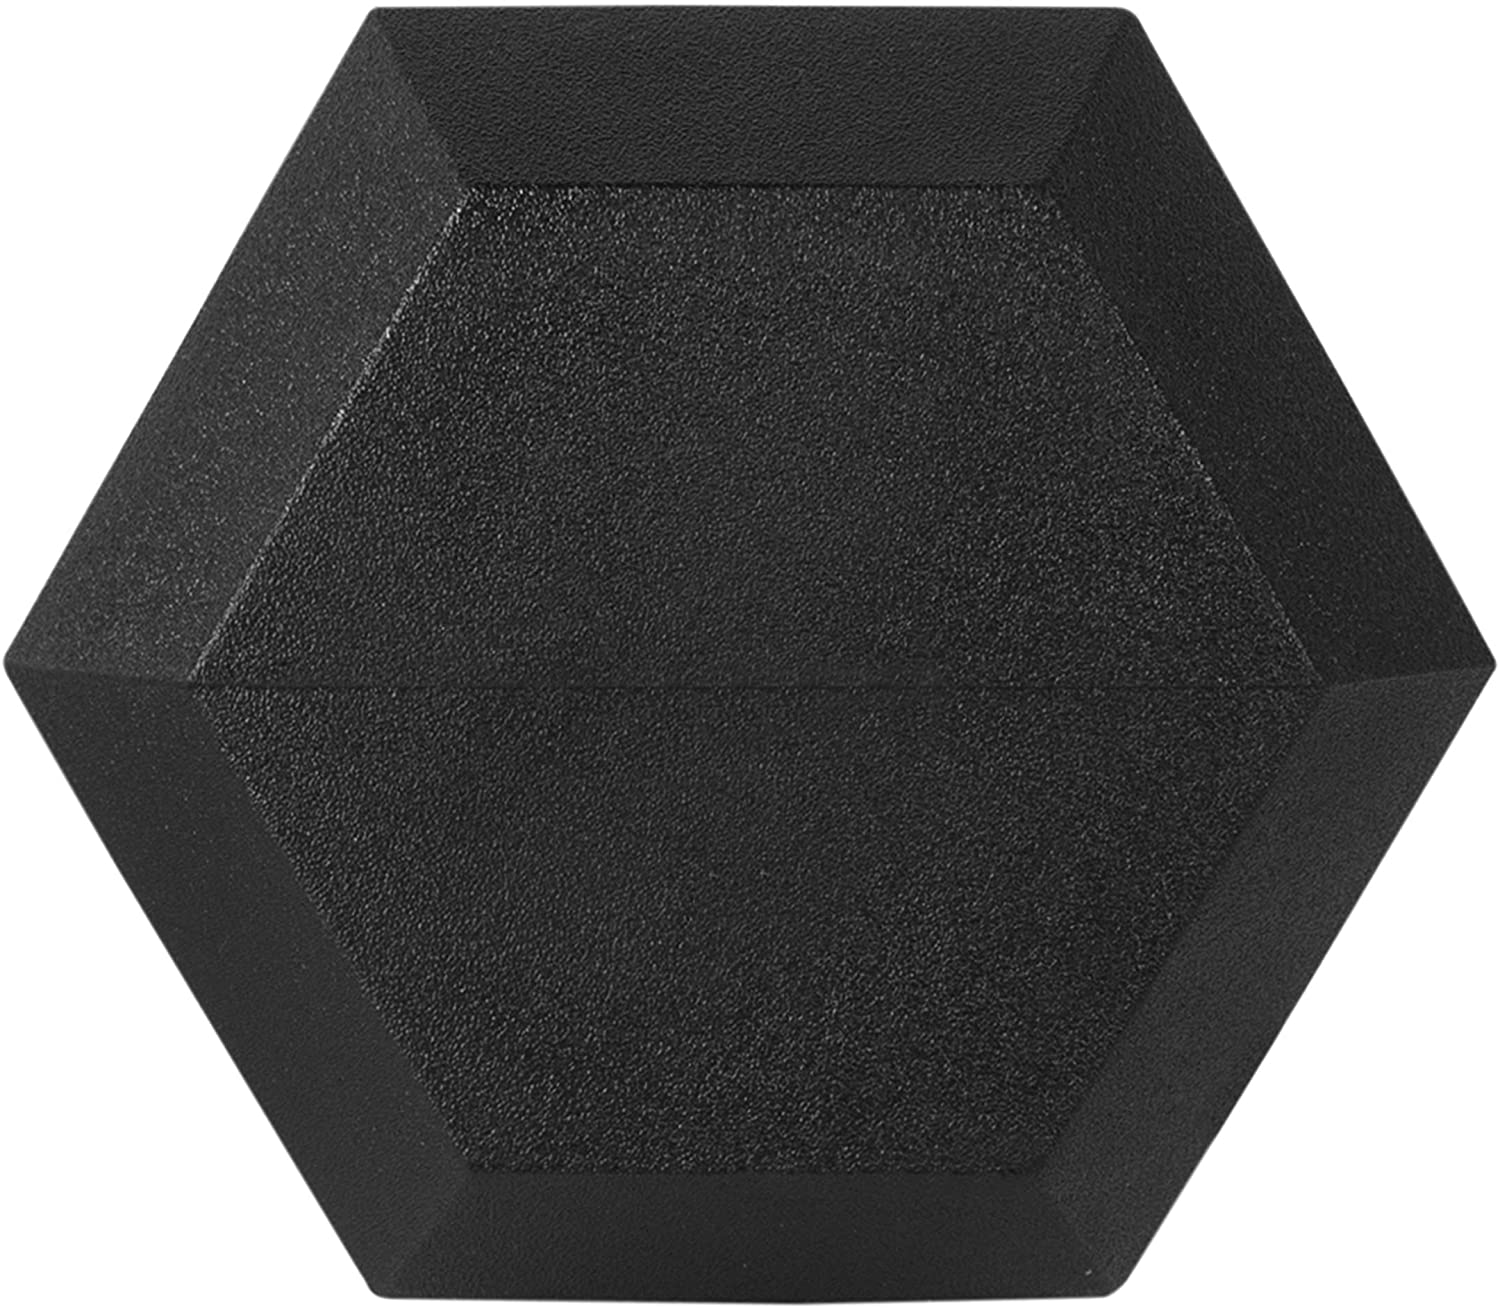 Single CAP Barbell Rubber Coated Hex Dumbbell with Contoured Chrome Handle